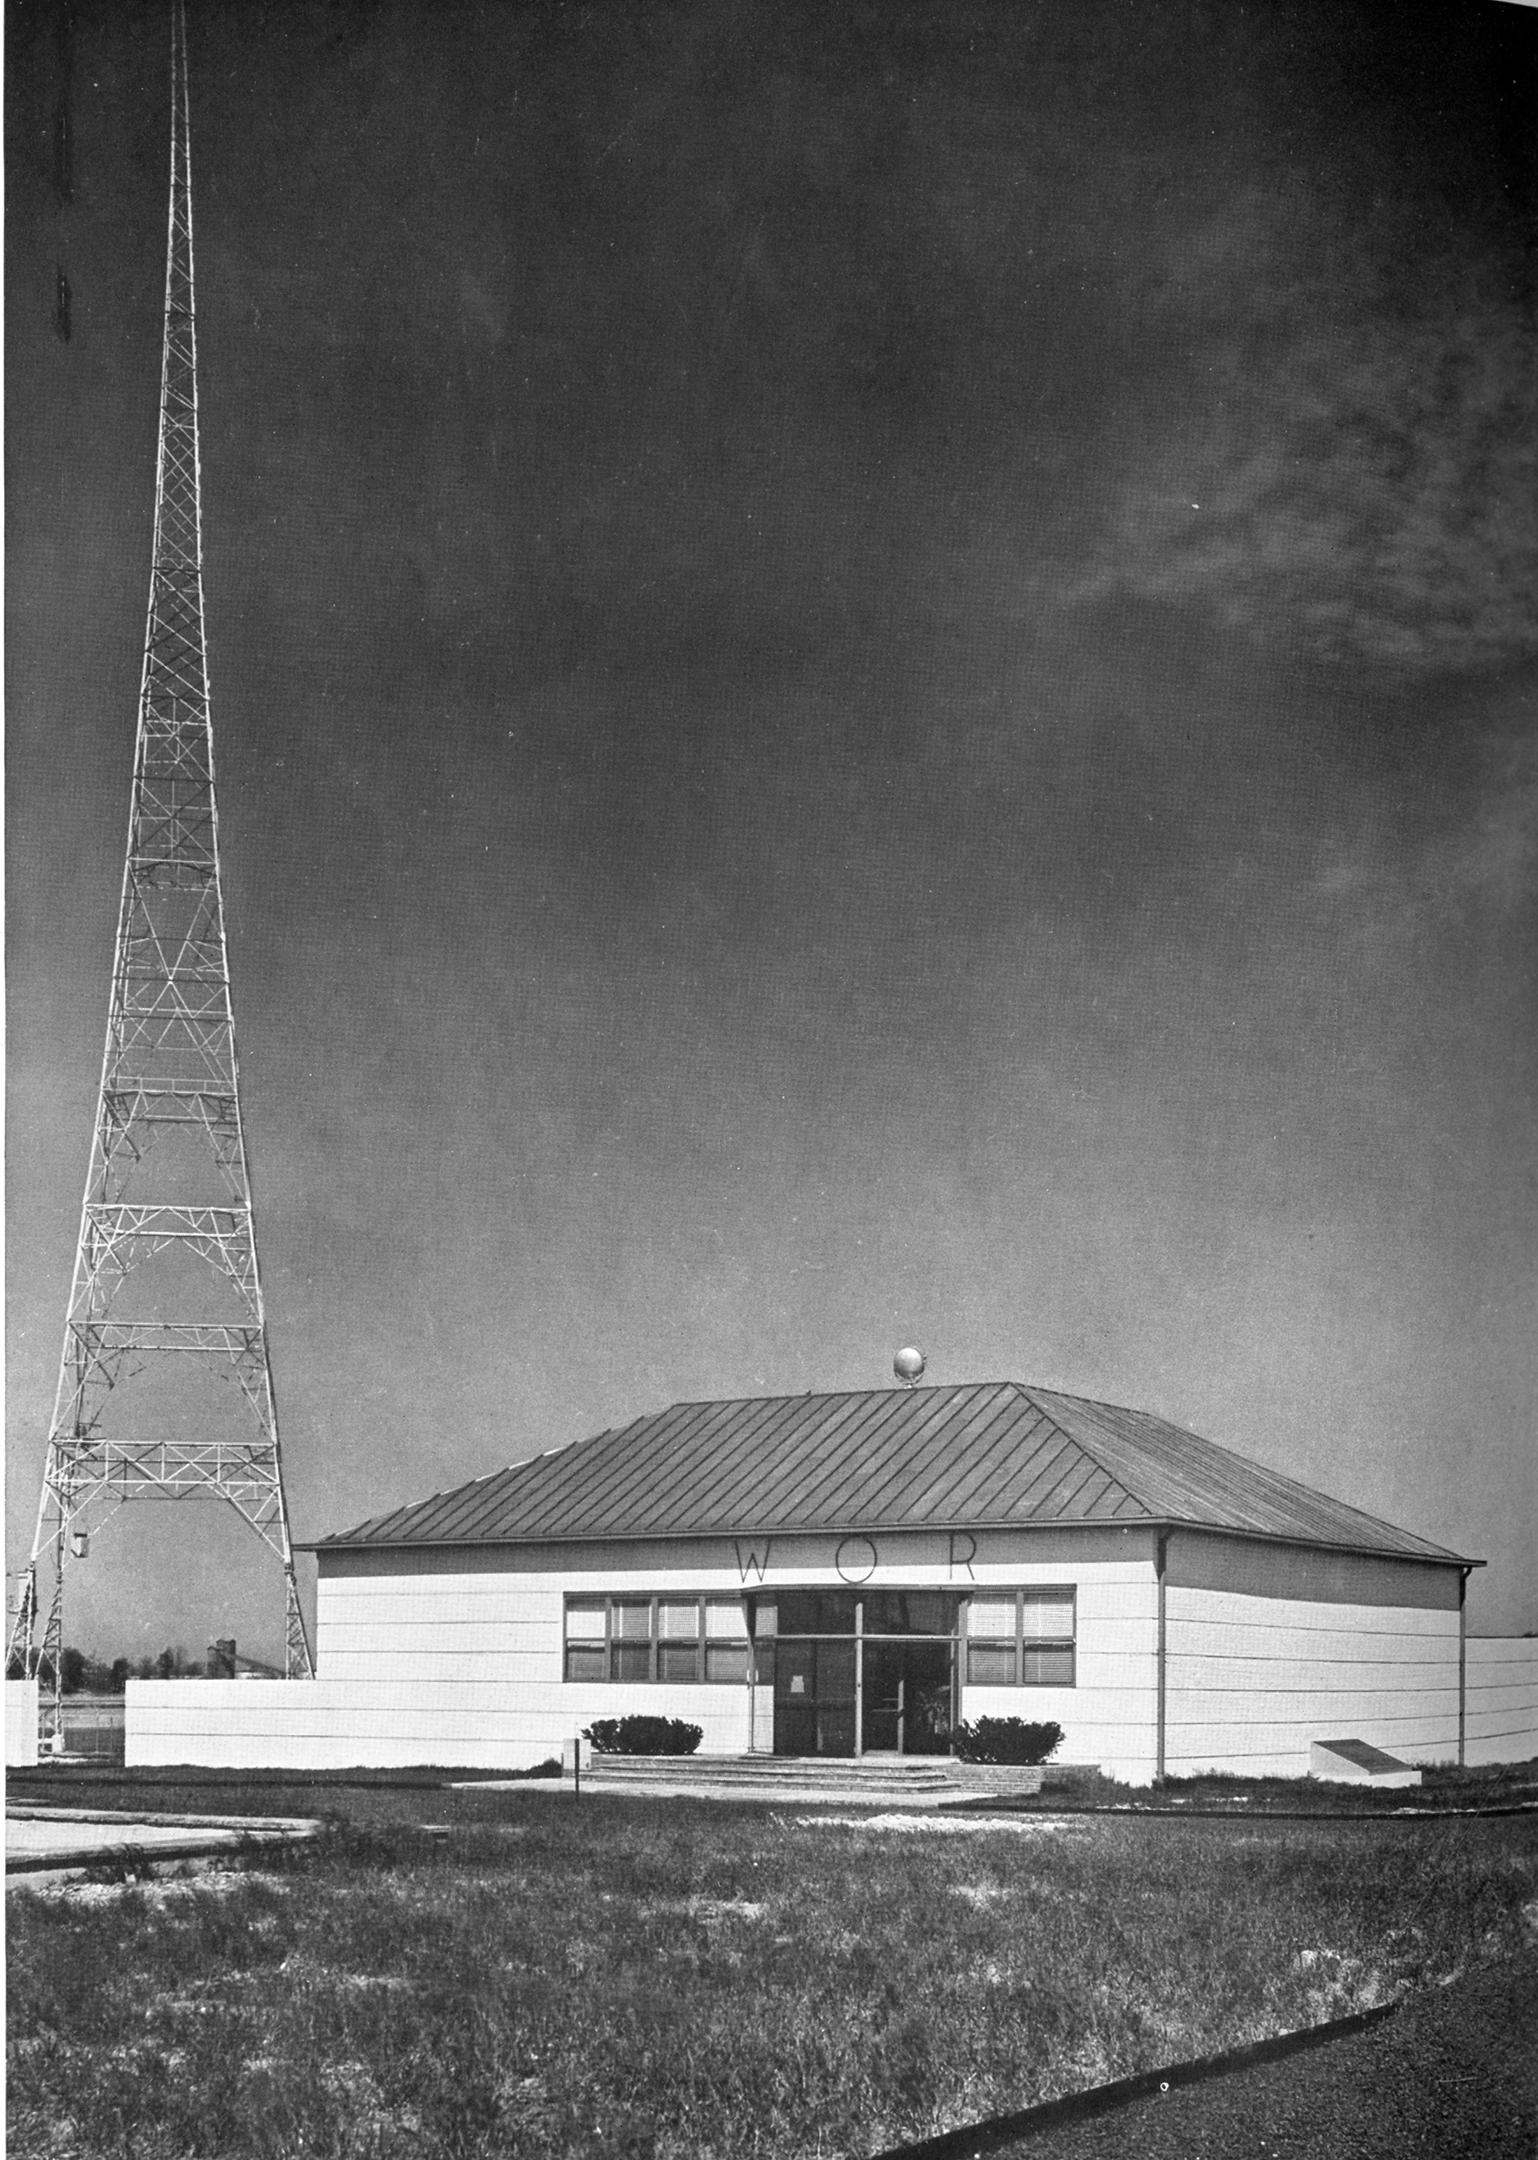 Fig. 5. Voorhees, Gmelin and Walker, WOR, Radio Transmitting Station, Carteret, N.J., 1935, as published in American Architect 146, n. 2634 (June 1935): 68-76. View.